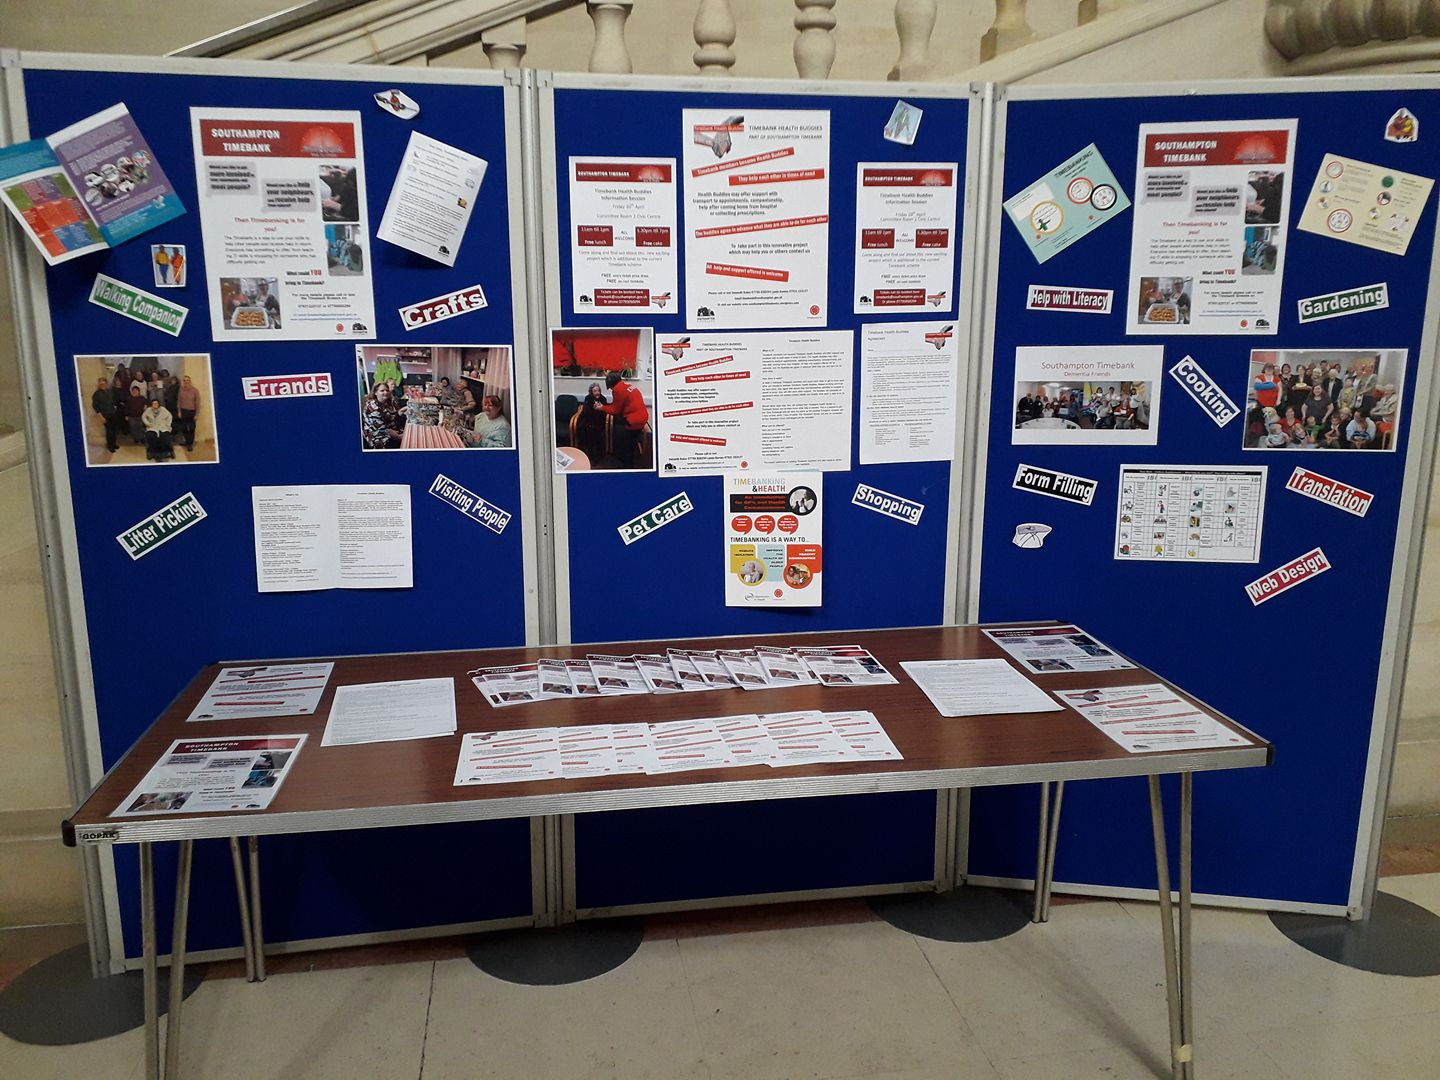 Promoting the Timebank @ Civic Centre